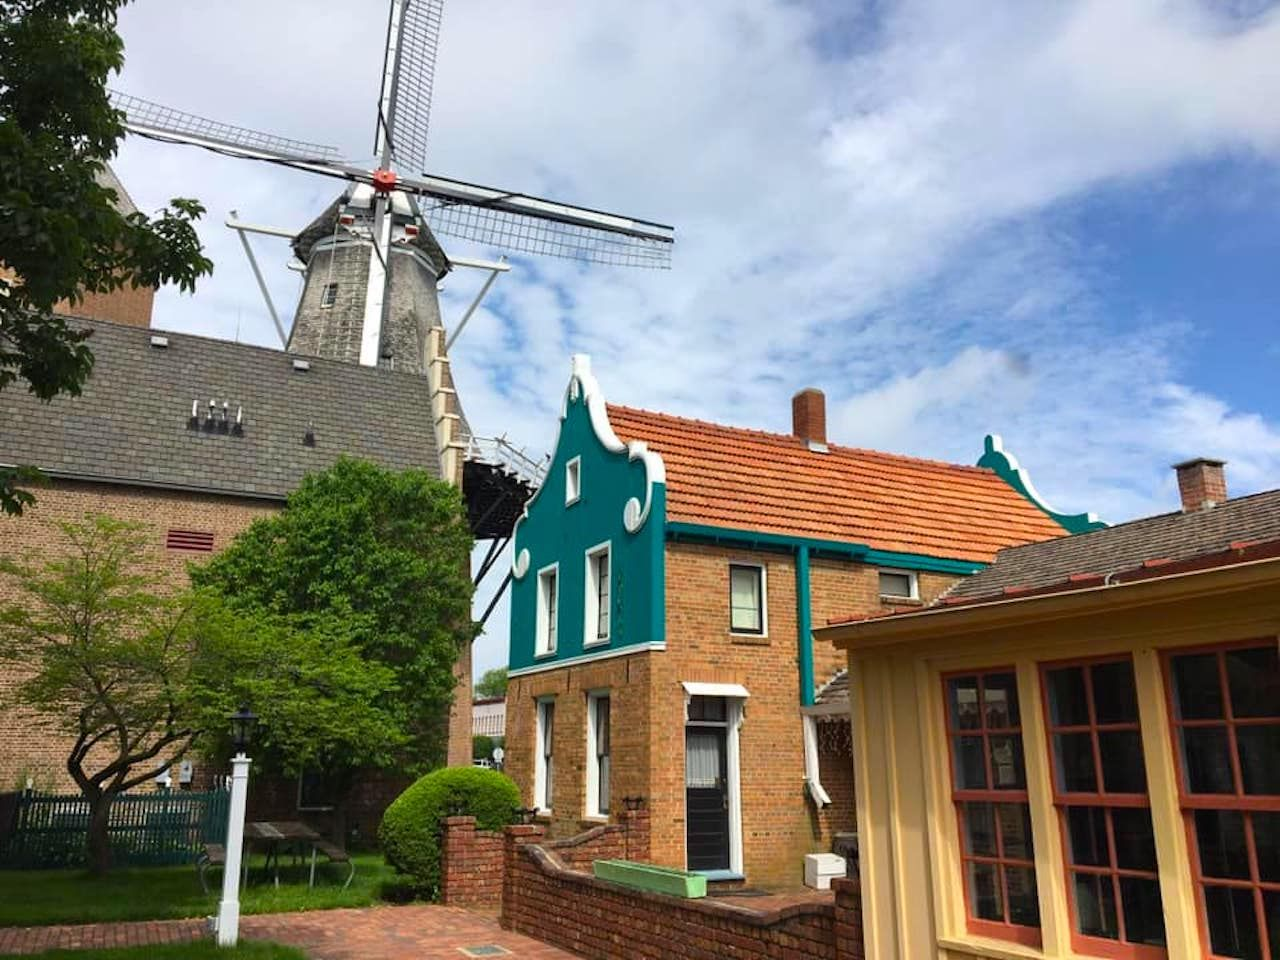 Pella Historical Museum and Tulip Time, King's Day in Dutch culture